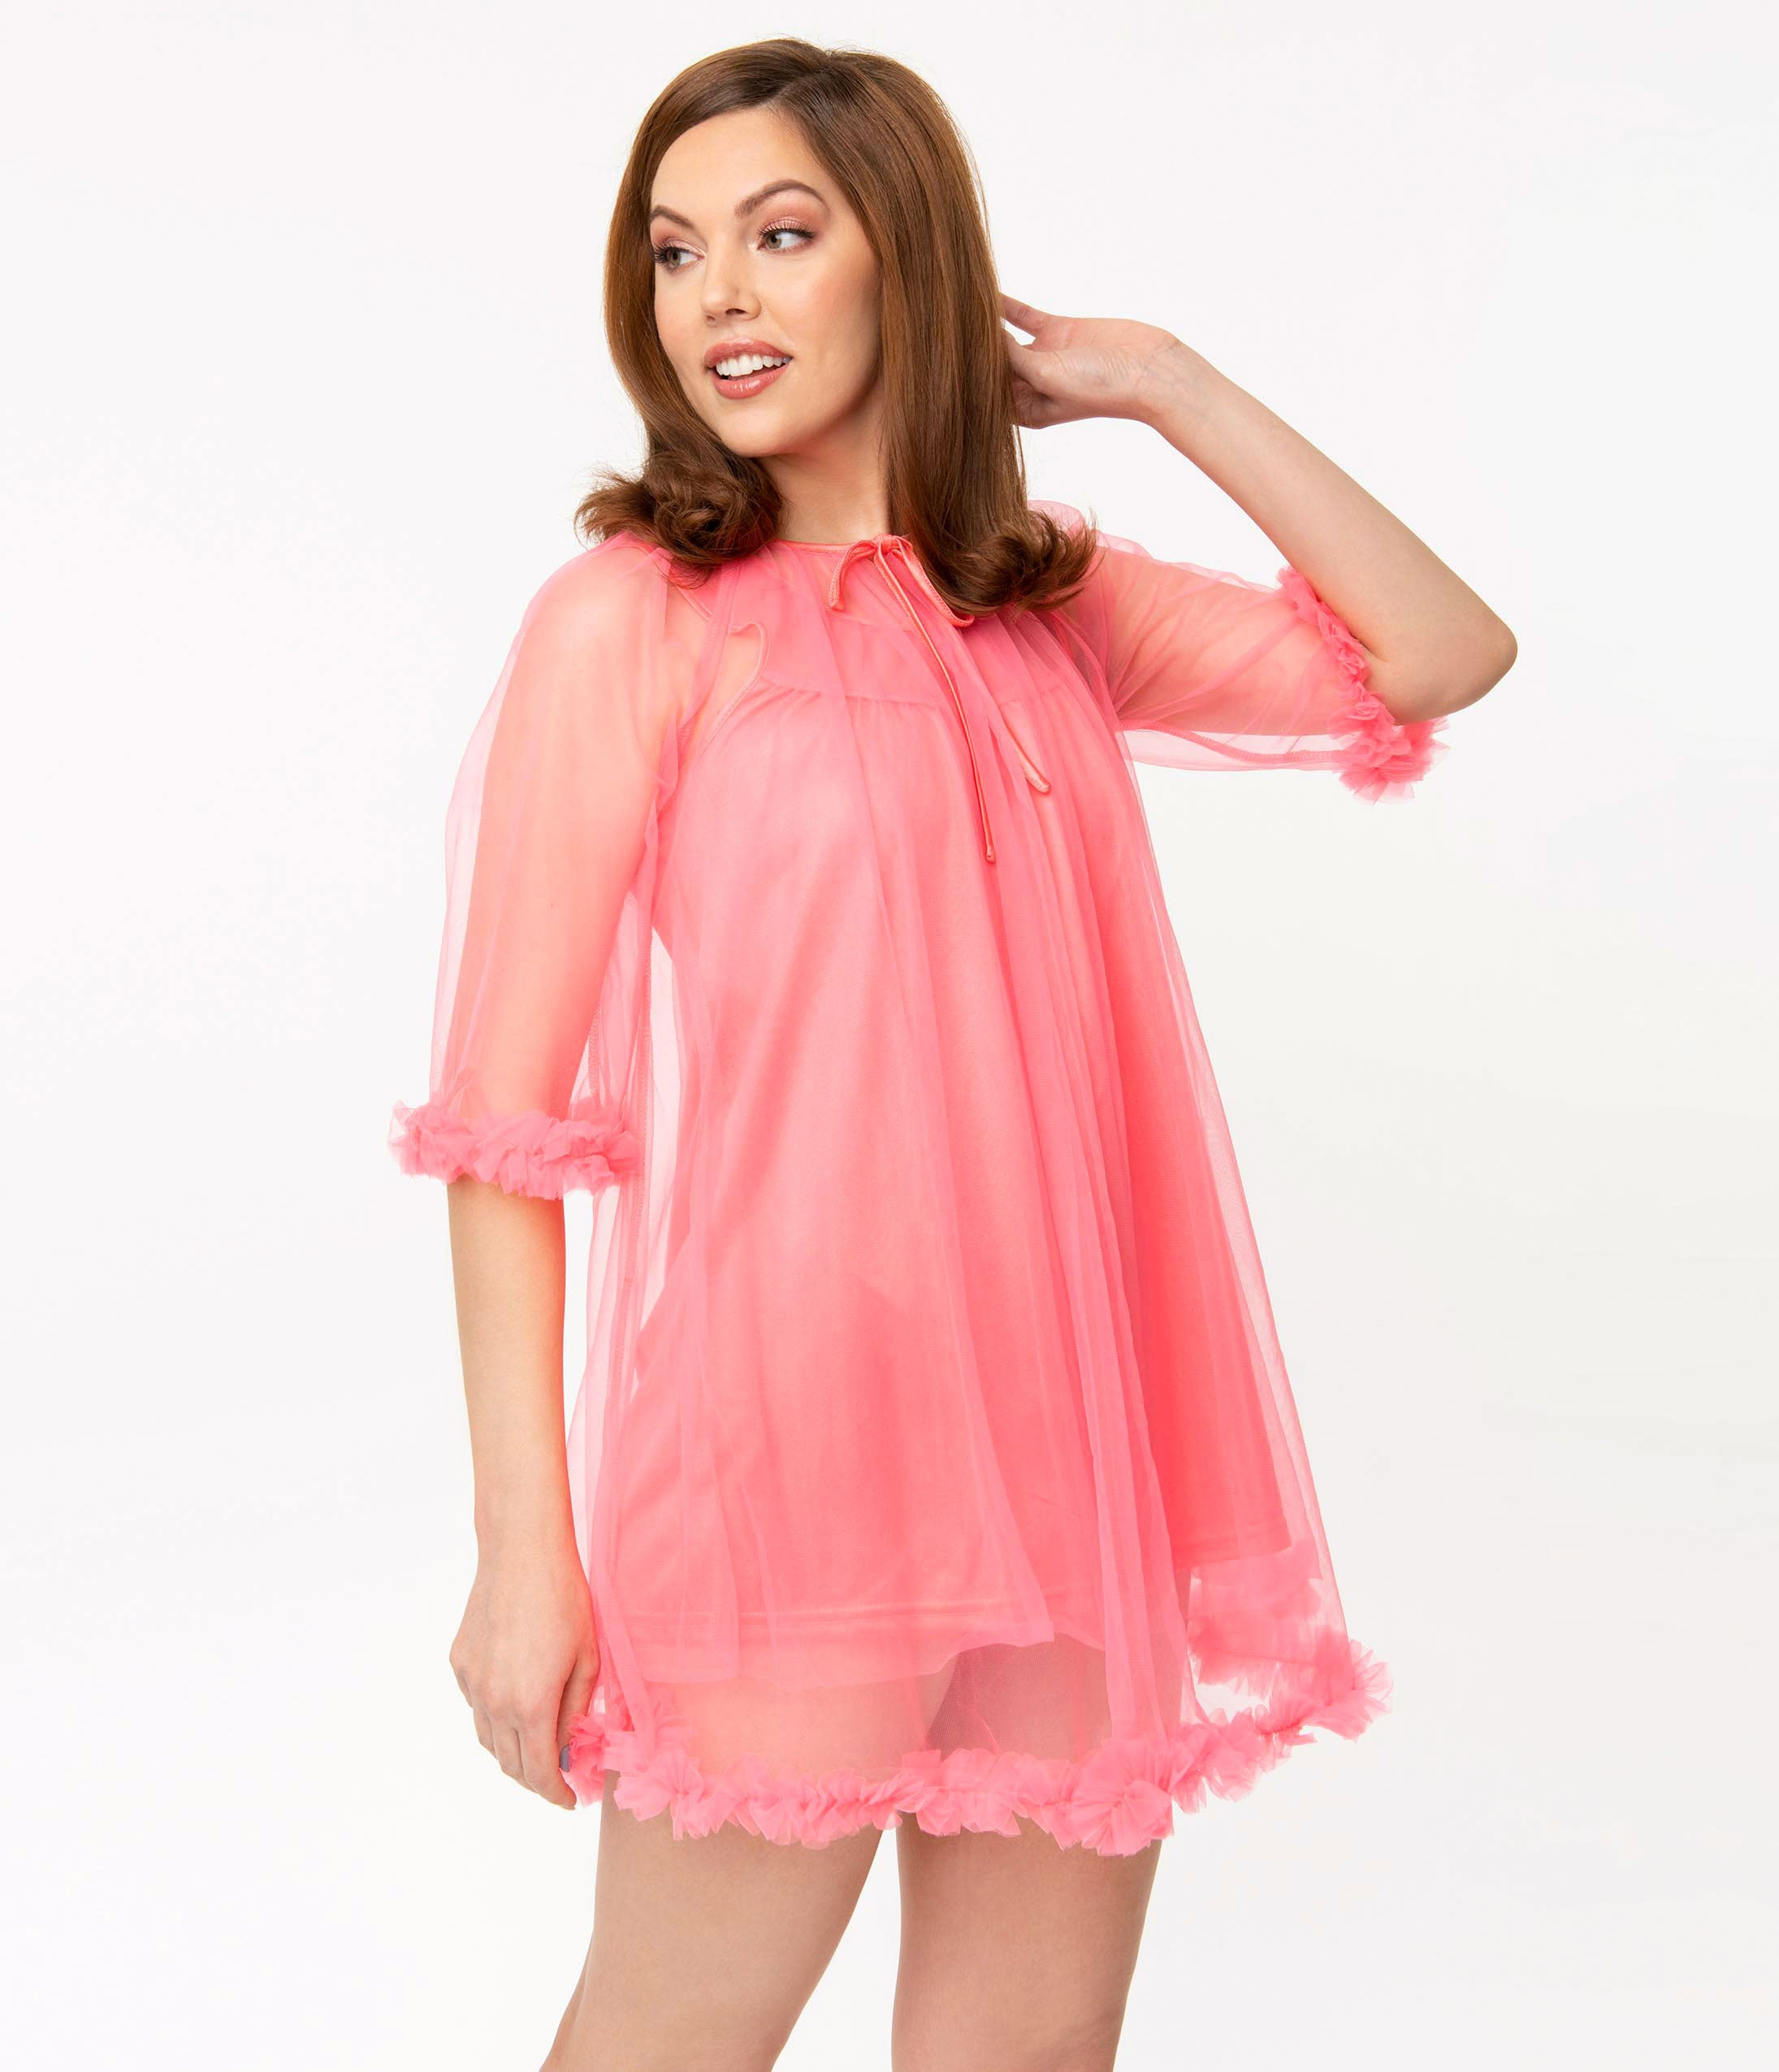 Vintage Nightgowns, Pajamas, Baby Dolls, Robes 1960S Style Neon Pink Pillow Talk Mini Nightgown Set $78.00 AT vintagedancer.com